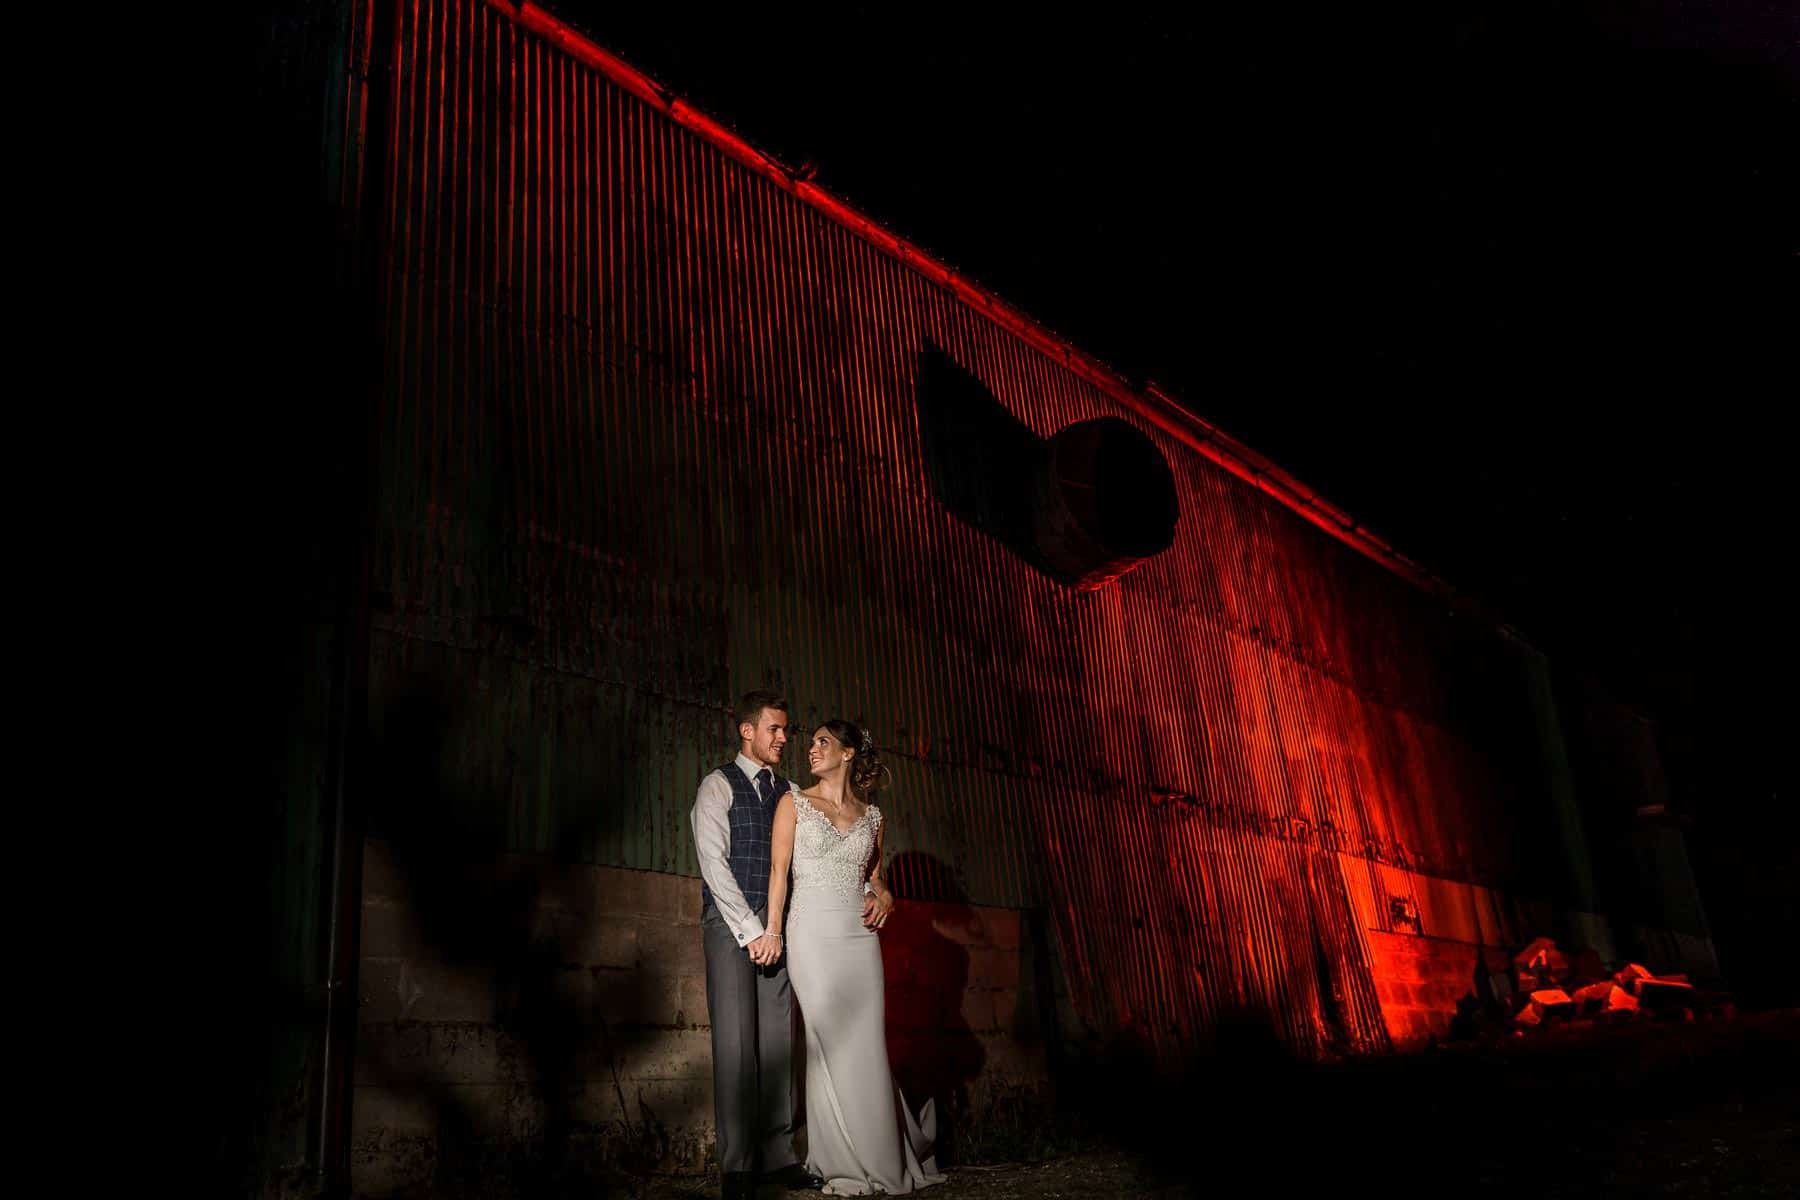 Stunning night portrait using off camera flash OCF at a working farm using mag mod and AD 200 Godox